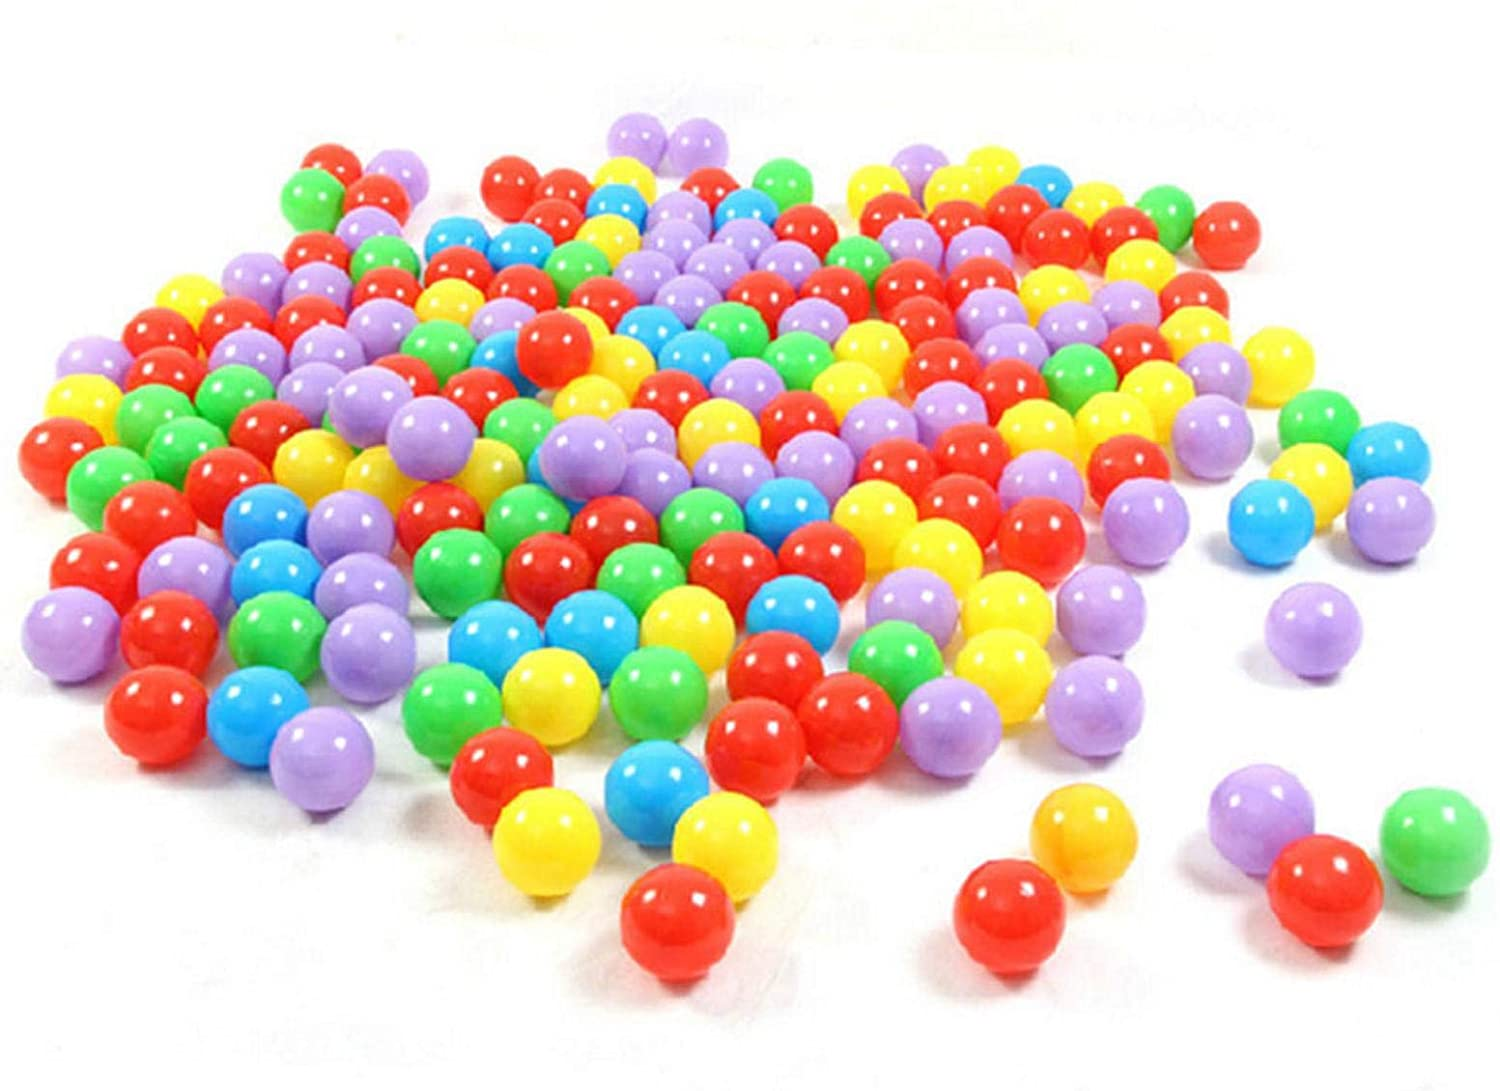 Paul03Daisy 5.5cm 100PCS Soft Plastic Kids Play Ball,Ocean Ball,Colorful Ball Fun Ball Kids Ball Swim Pit Toy Ball Tent Toddler Ball Play Balls for Indoor & Outdoor